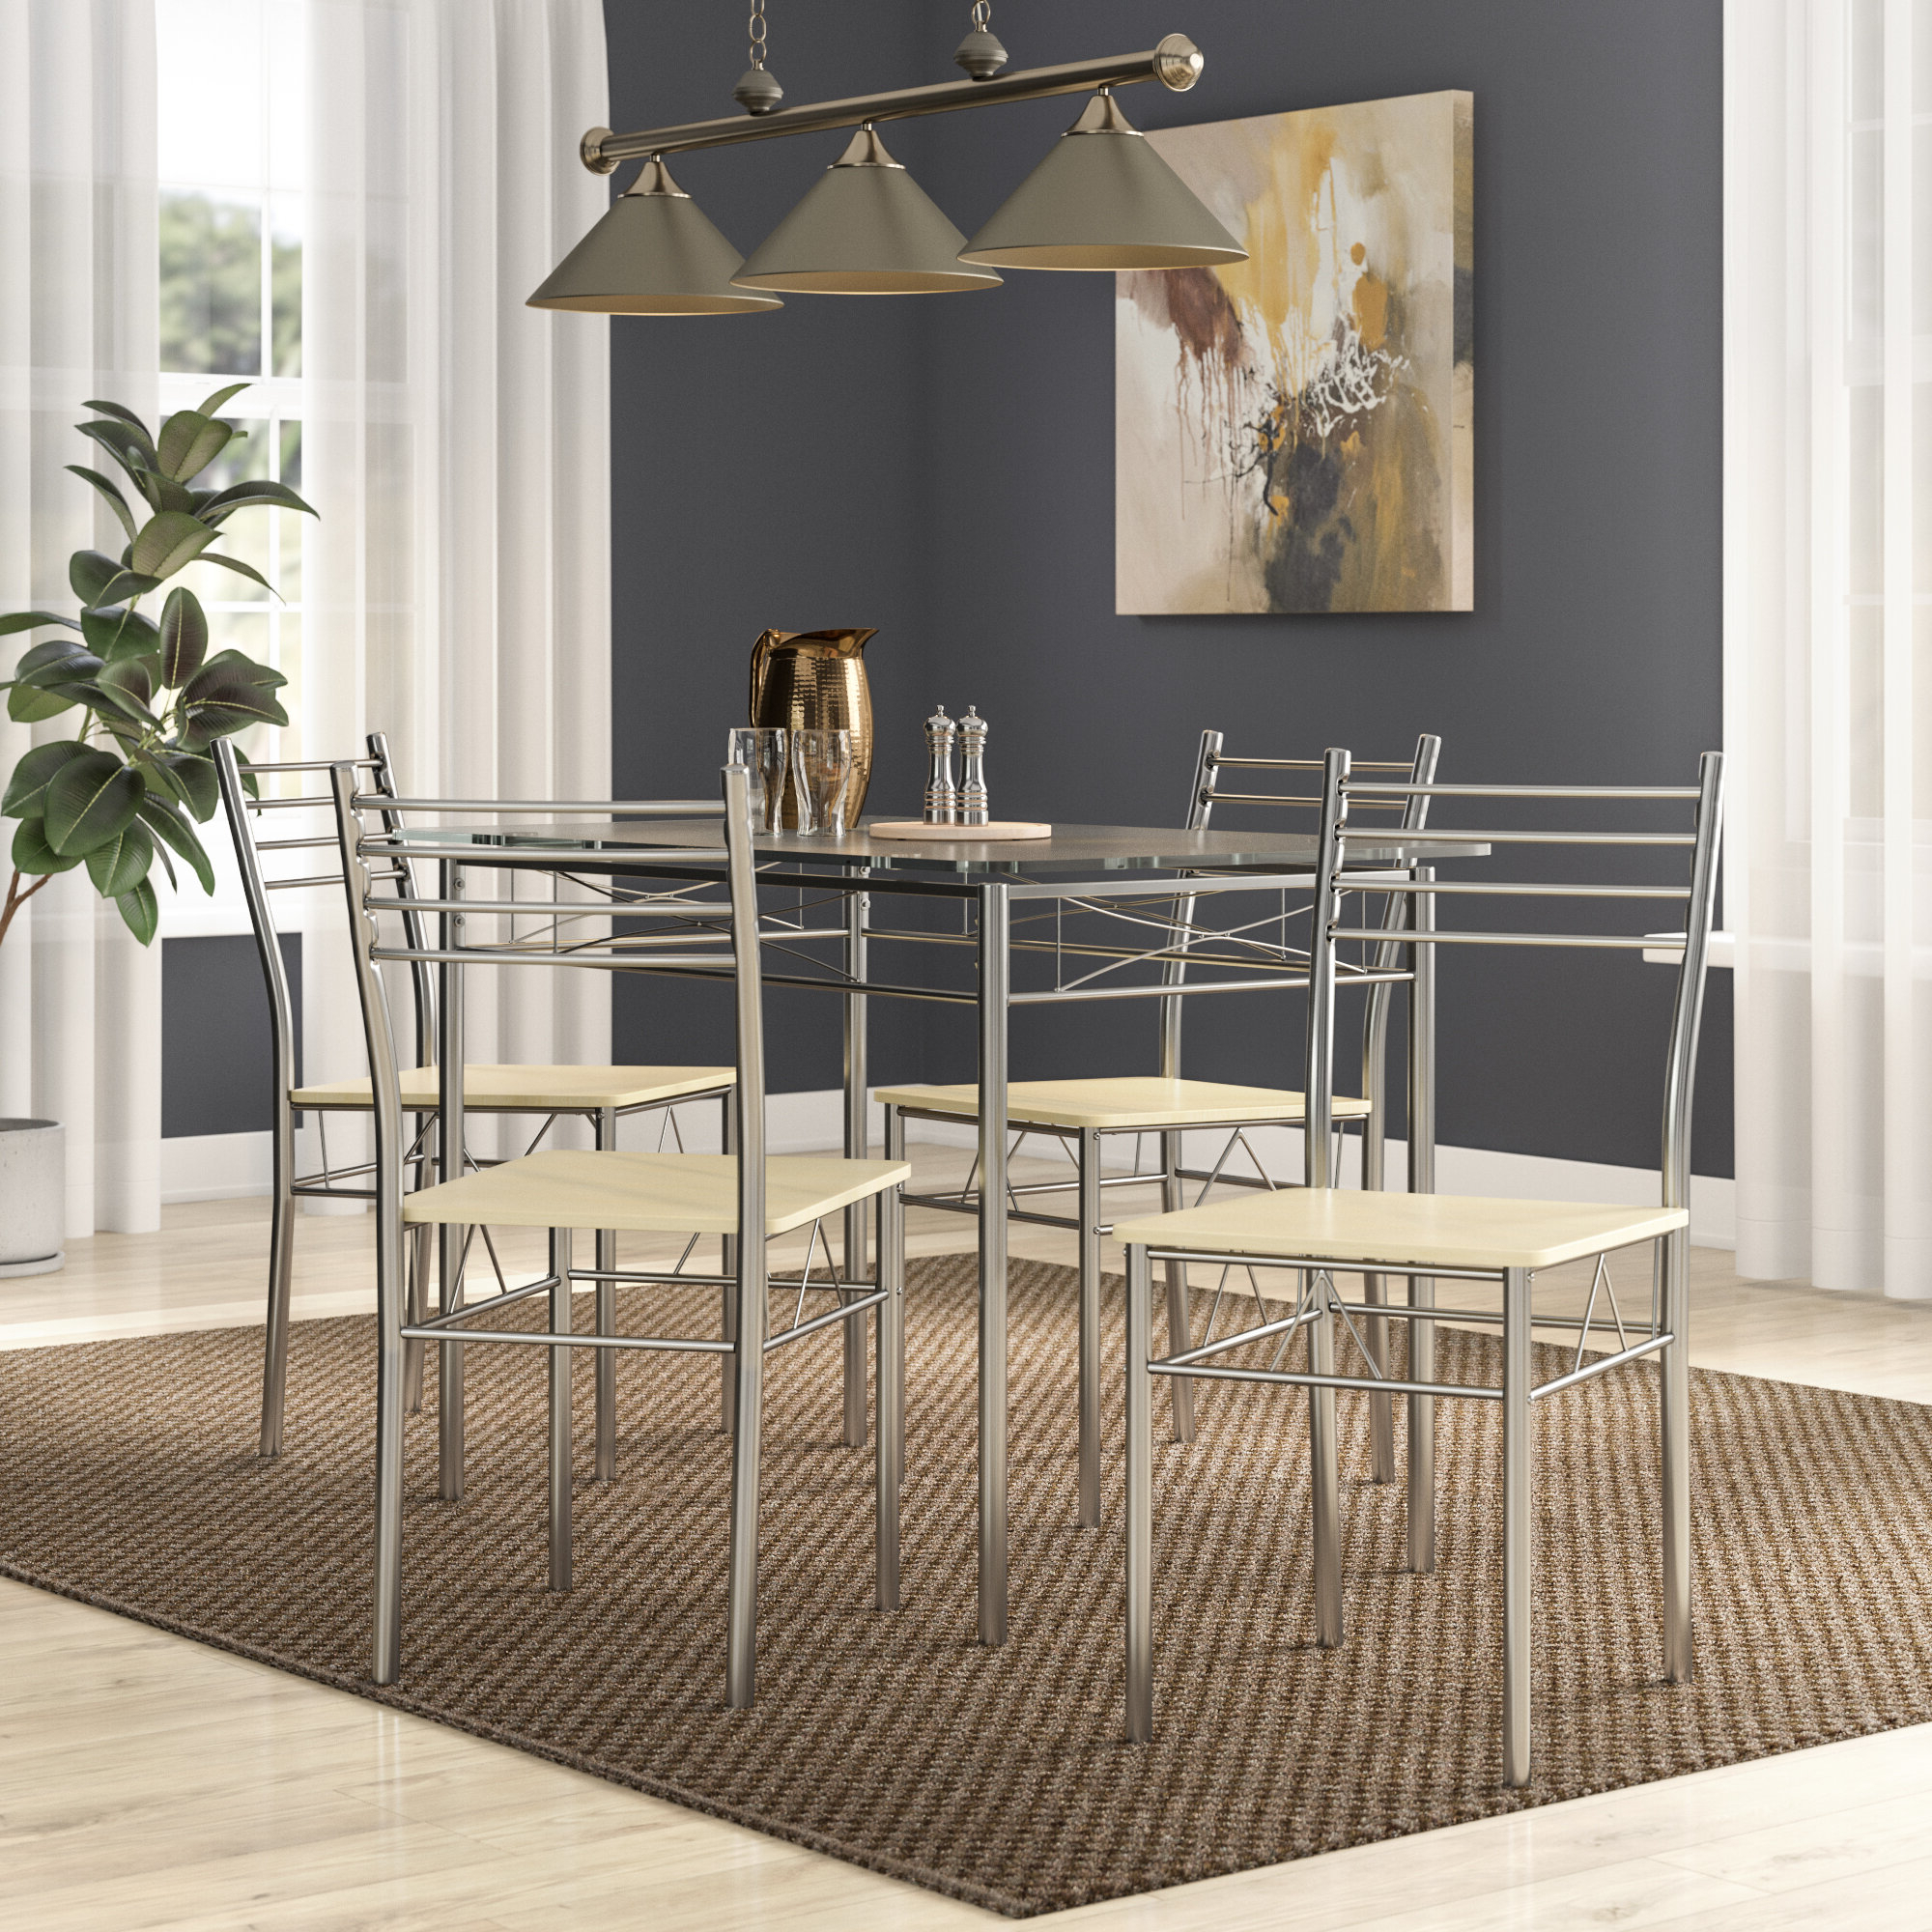 Zipcode Design North Reading 5 Piece Dining Table Set & Reviews In Widely Used North Reading 5 Piece Dining Table Sets (View 25 of 25)